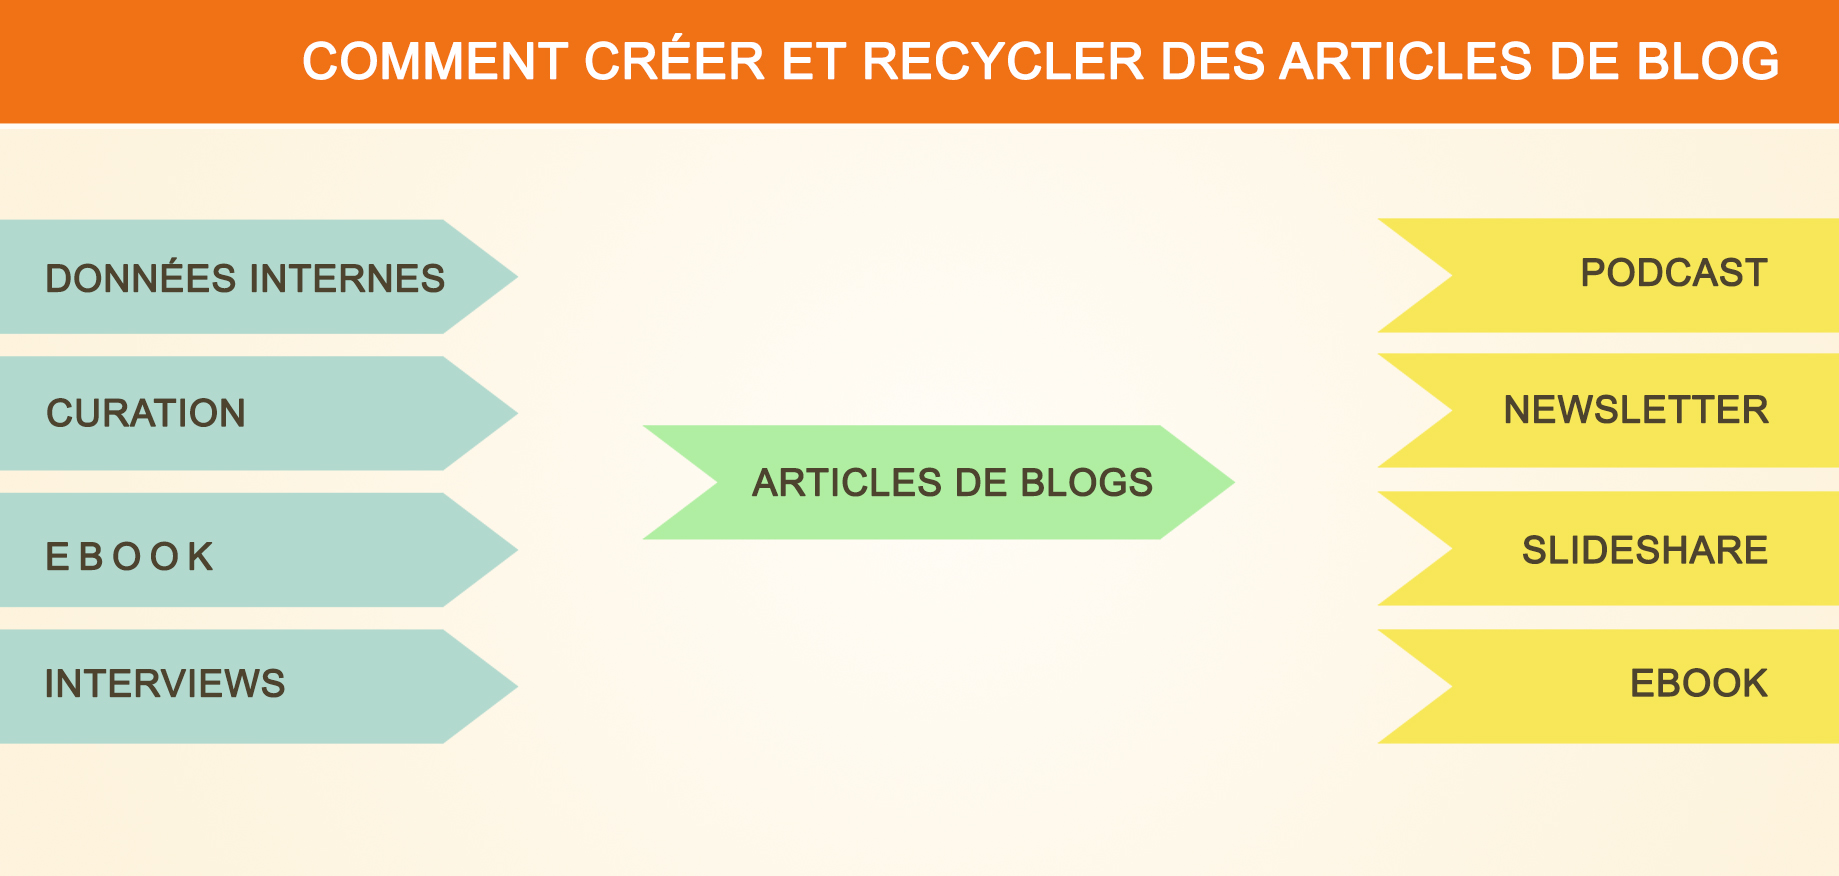 creation-recyclage-blog